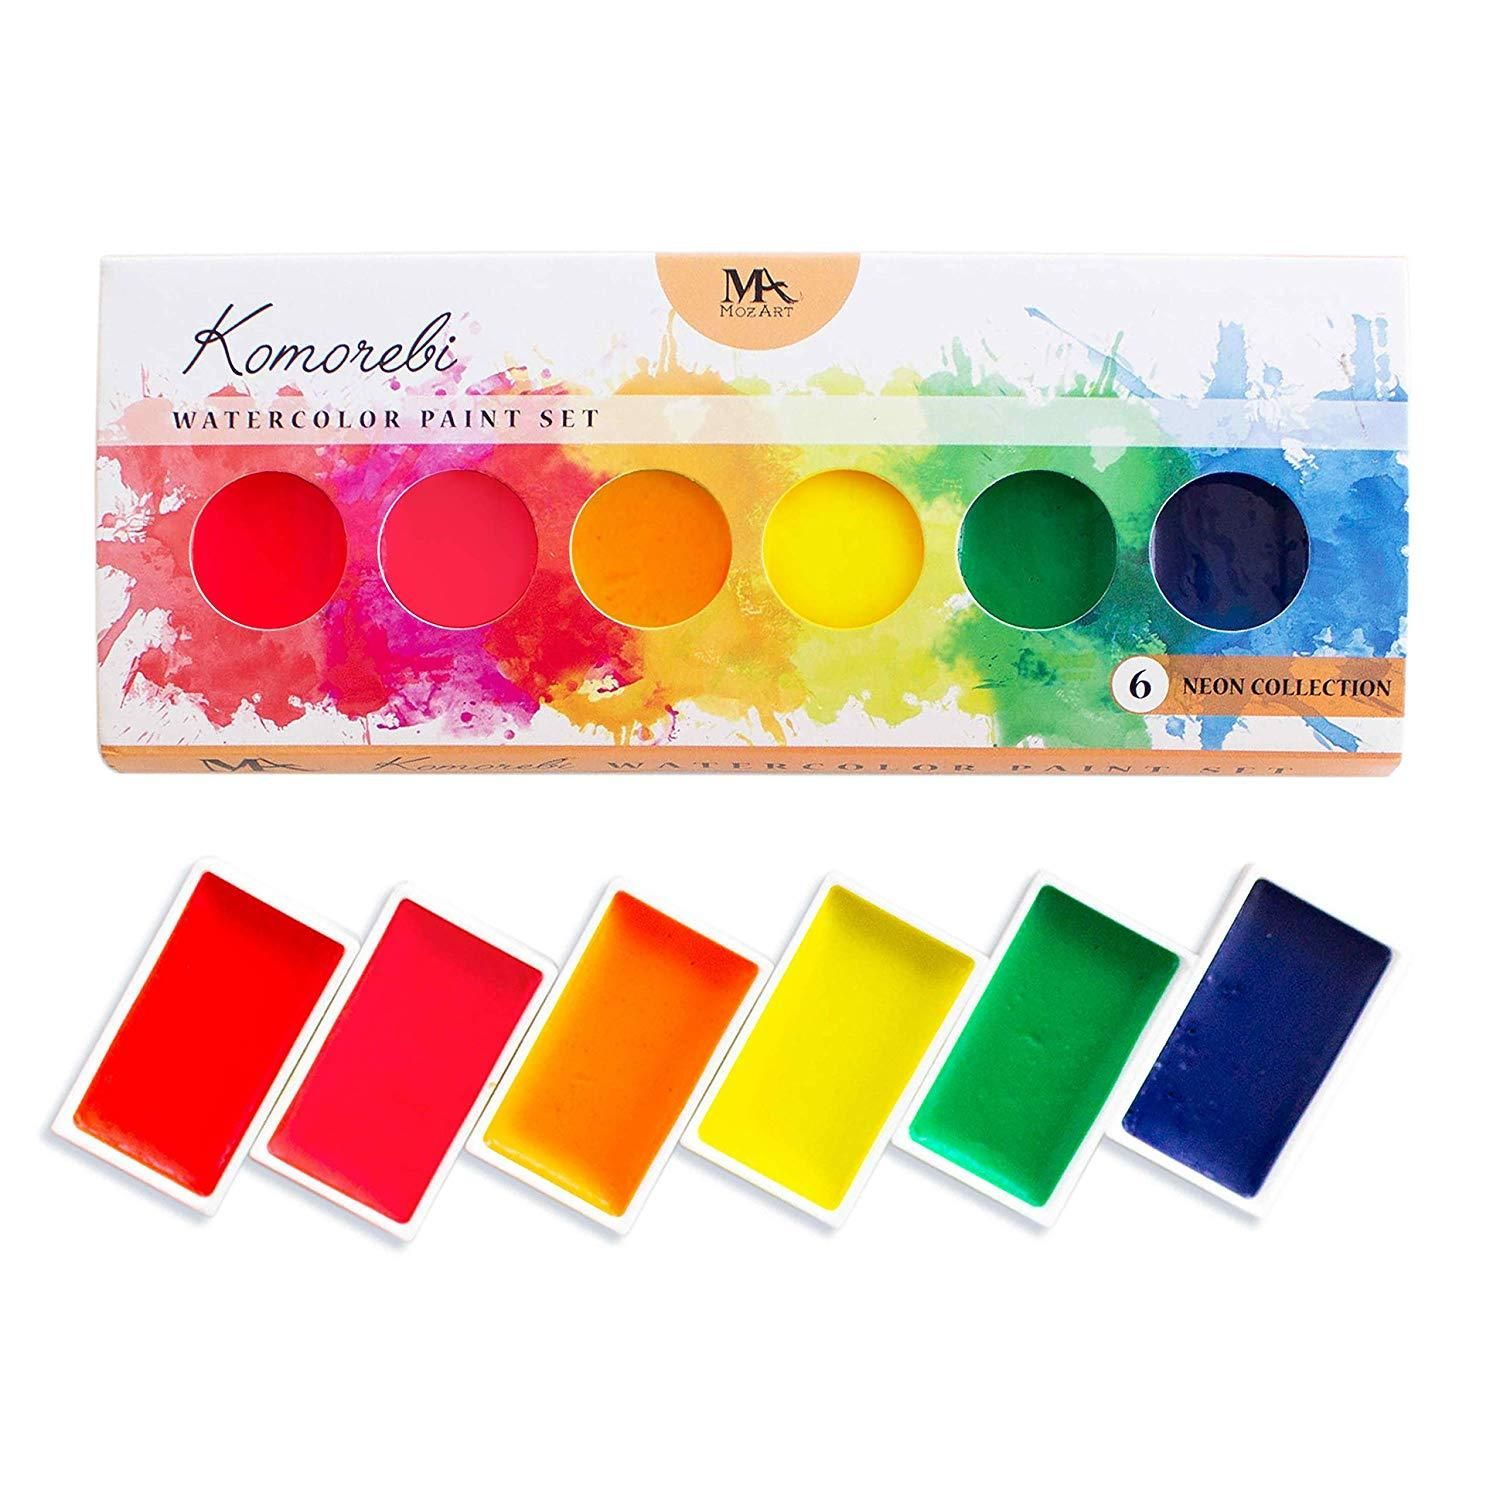 Neon Komorebi Watercolor Paint Set Watercolor Paint Set Paint